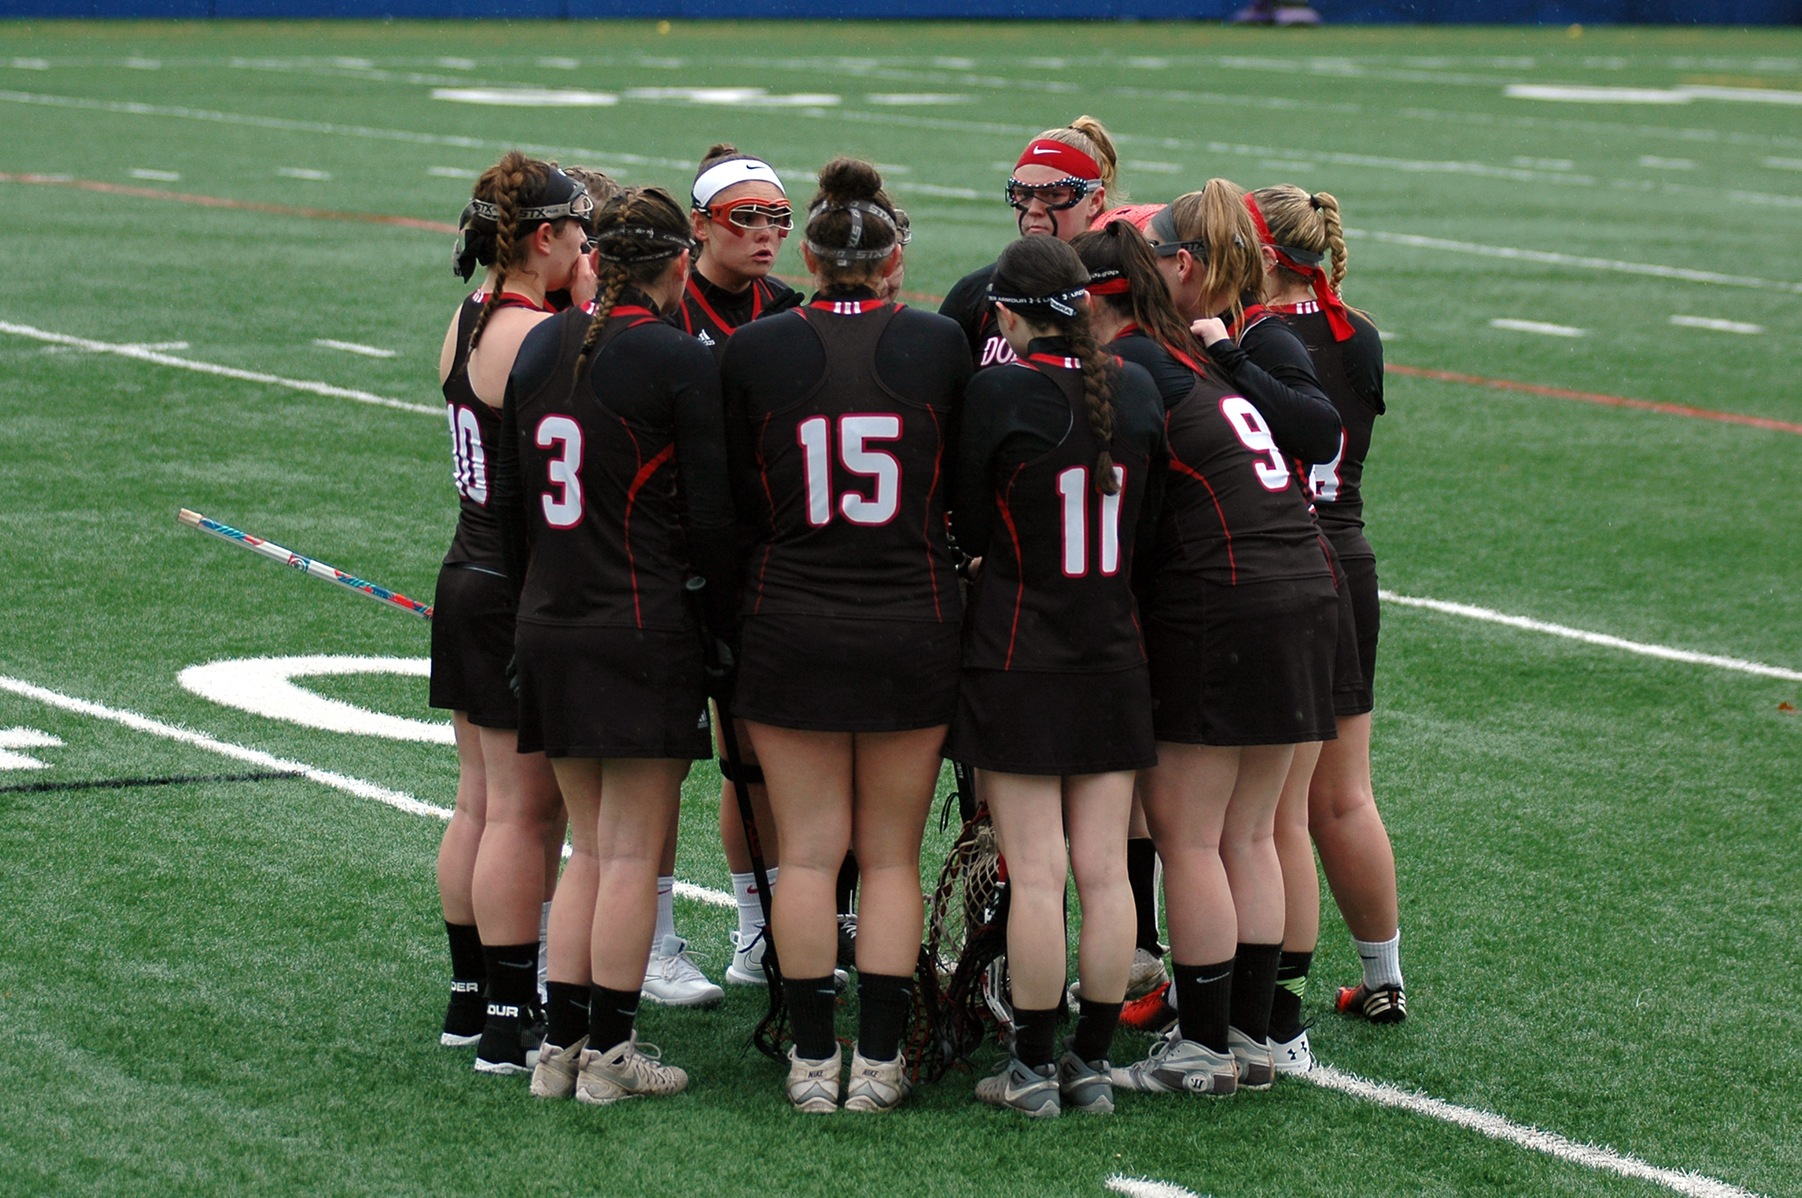 WOMEN'S LACROSSE OPEN SEASON WITH A LOSS TO SOUTHERN NEW HAMPSHIRE UNIVERSITY